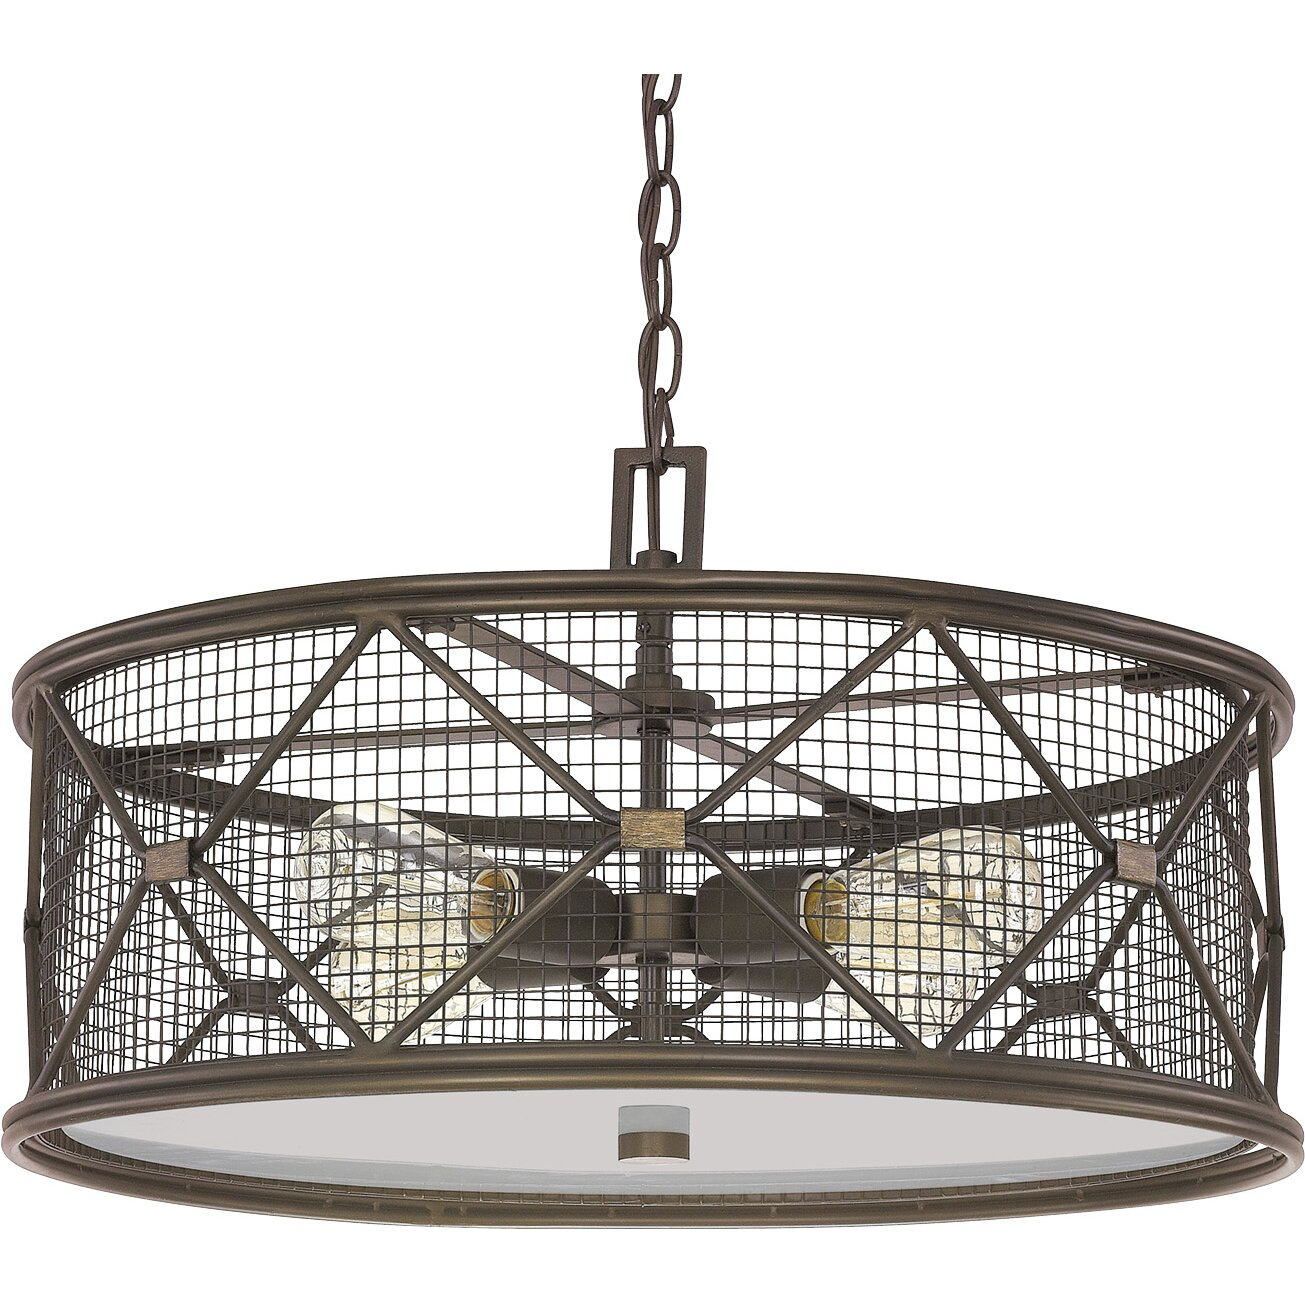 Foyer Drum Lighting : Laurel foundry modern farmhouse ashley light drum foyer